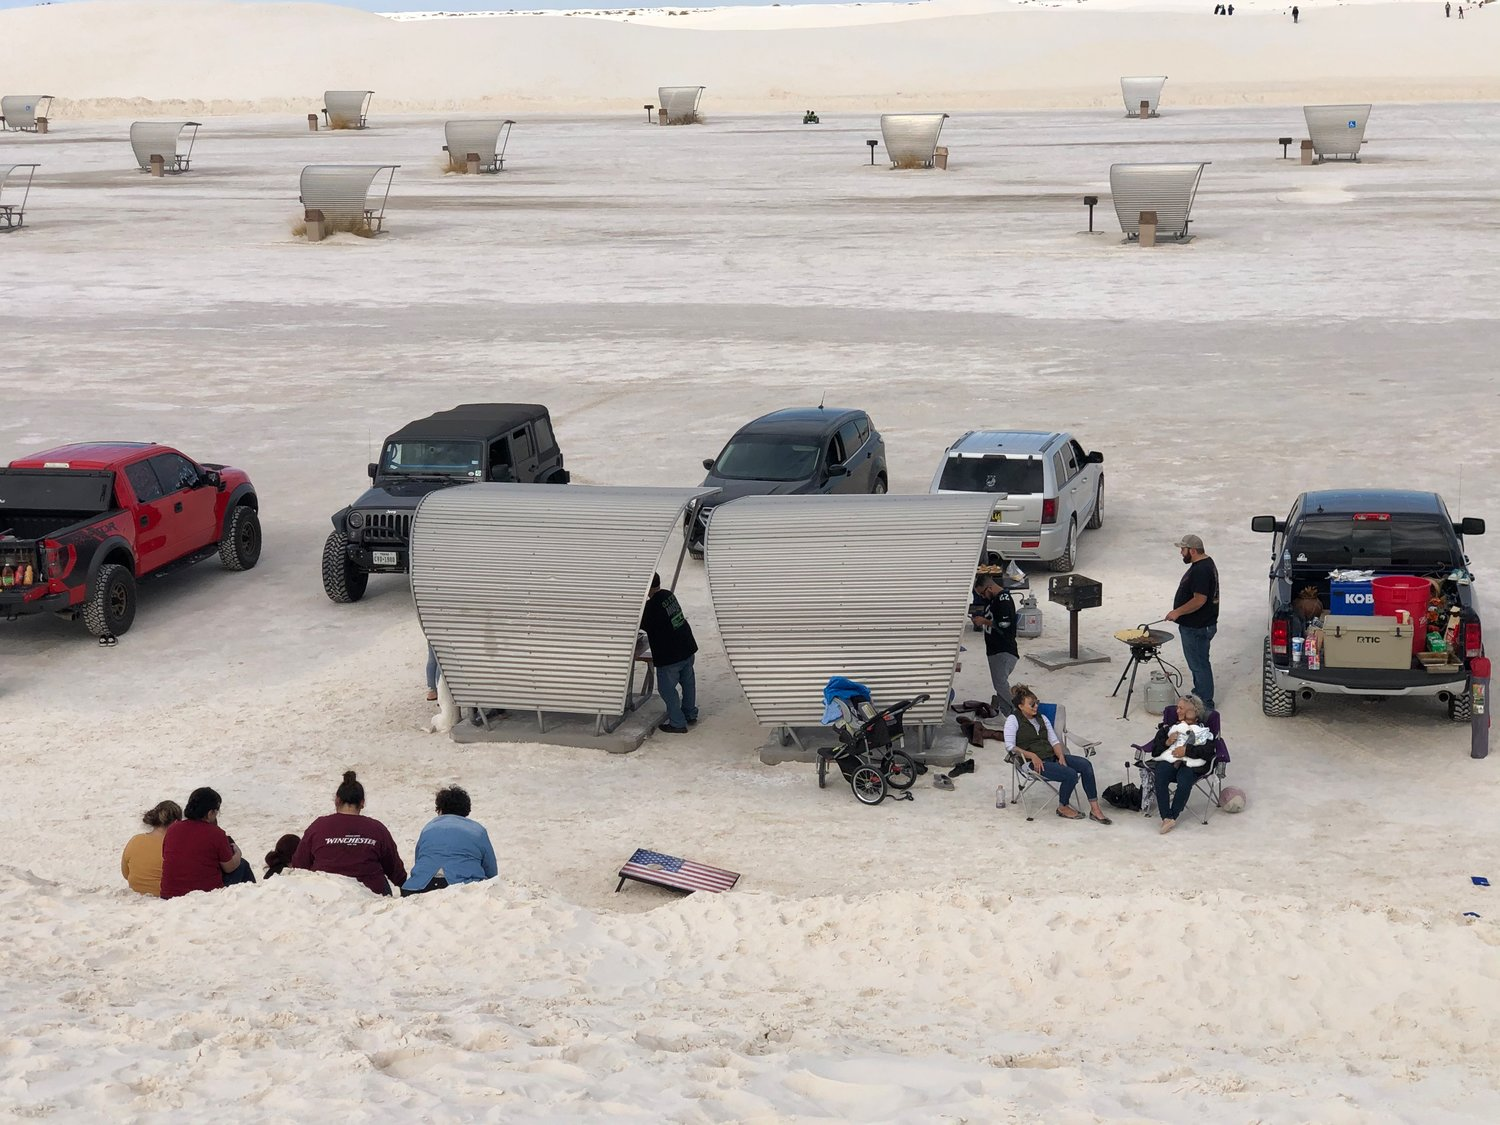 The picnic area at White Sands has seen improvements thanks to entrance fees collected over the years.